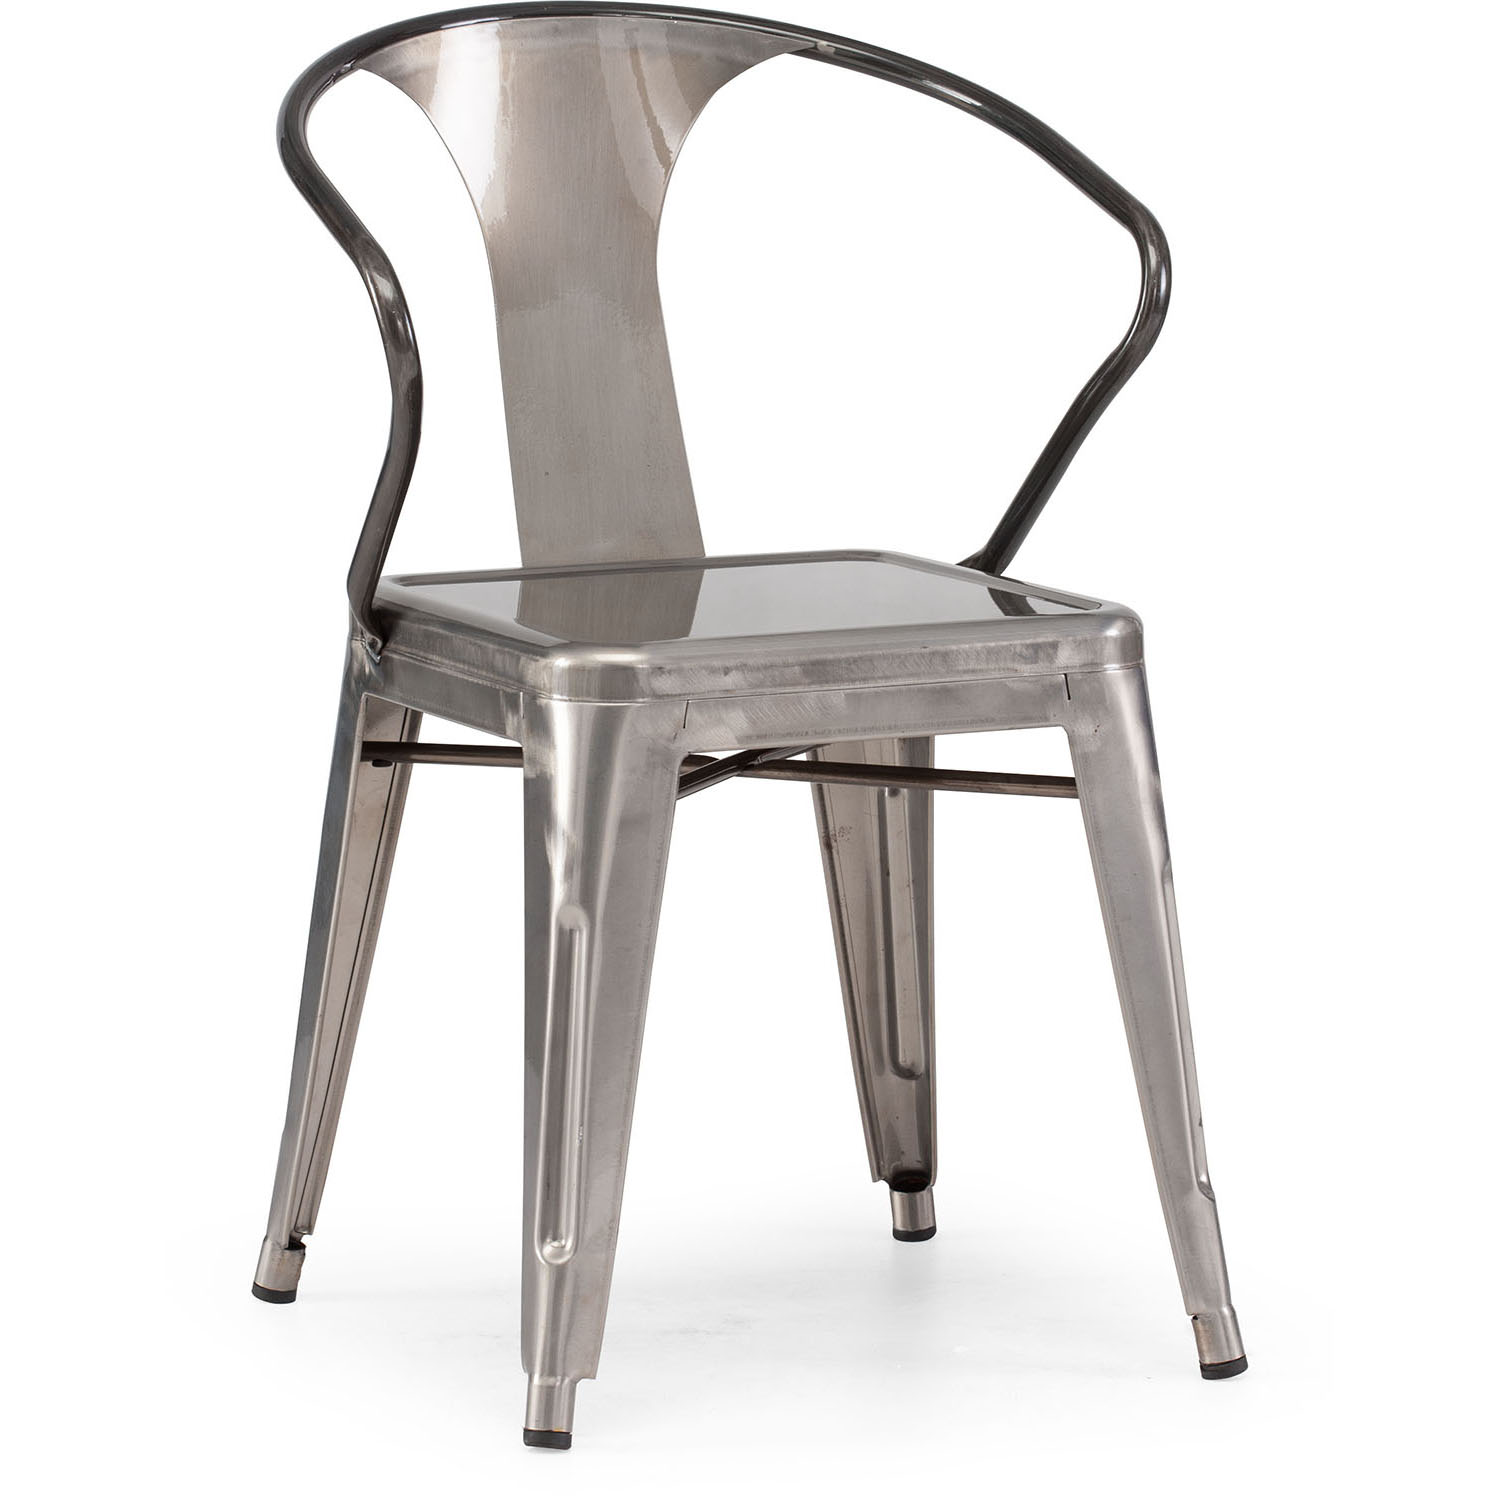 Lovable Era Heli Dining Chairs  Product Photo